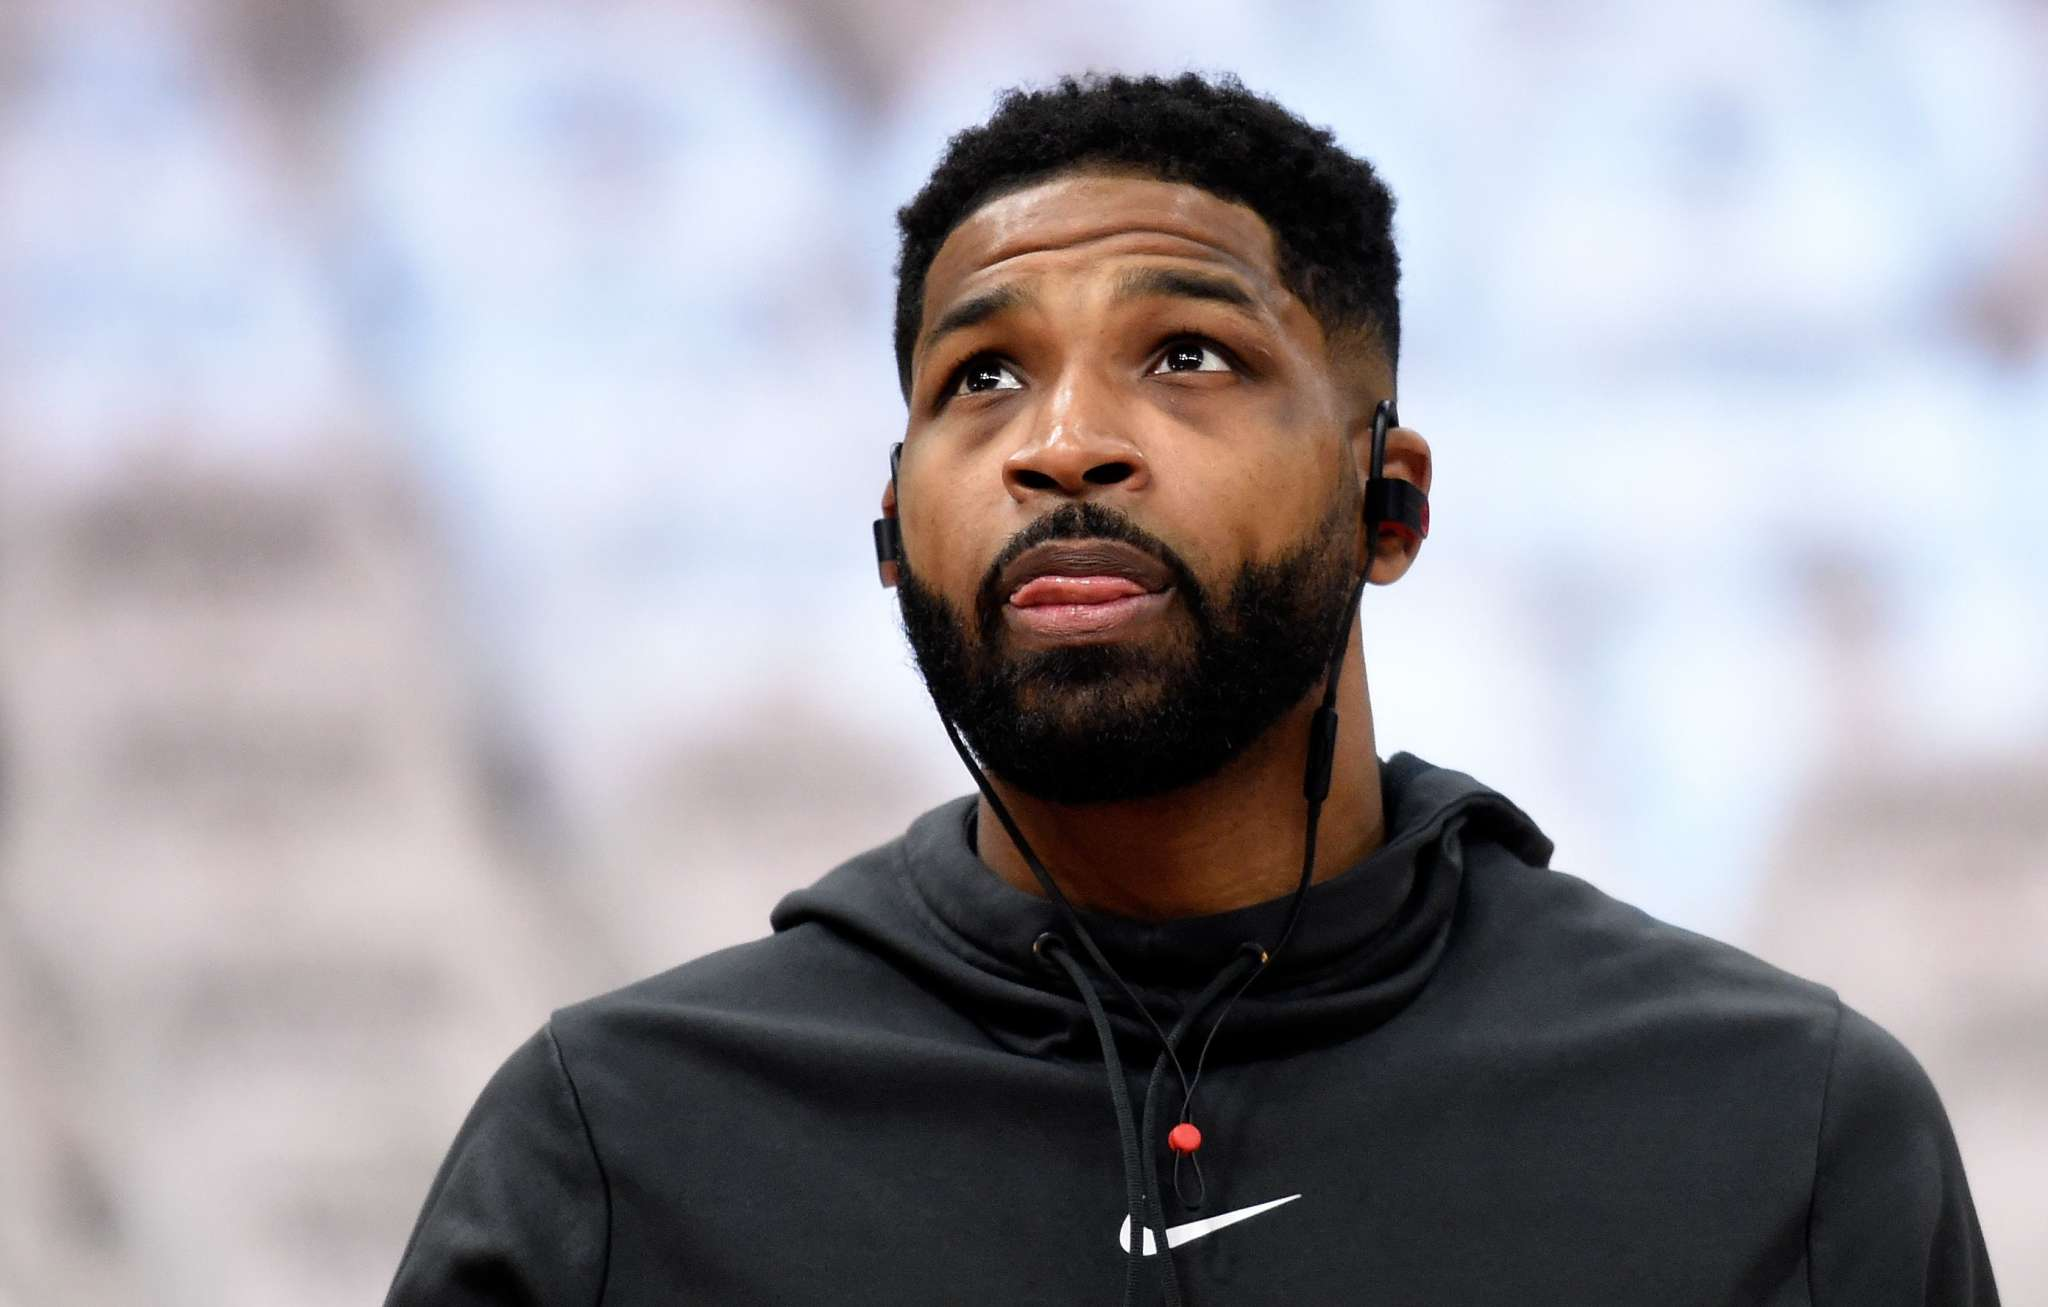 Tristan Thompson Reportedly Slid Into A 17-Year-Old Girl DMs - She Shows A Photo And Calls Him 'Trash' - People Surprisingly Defend Him On This One